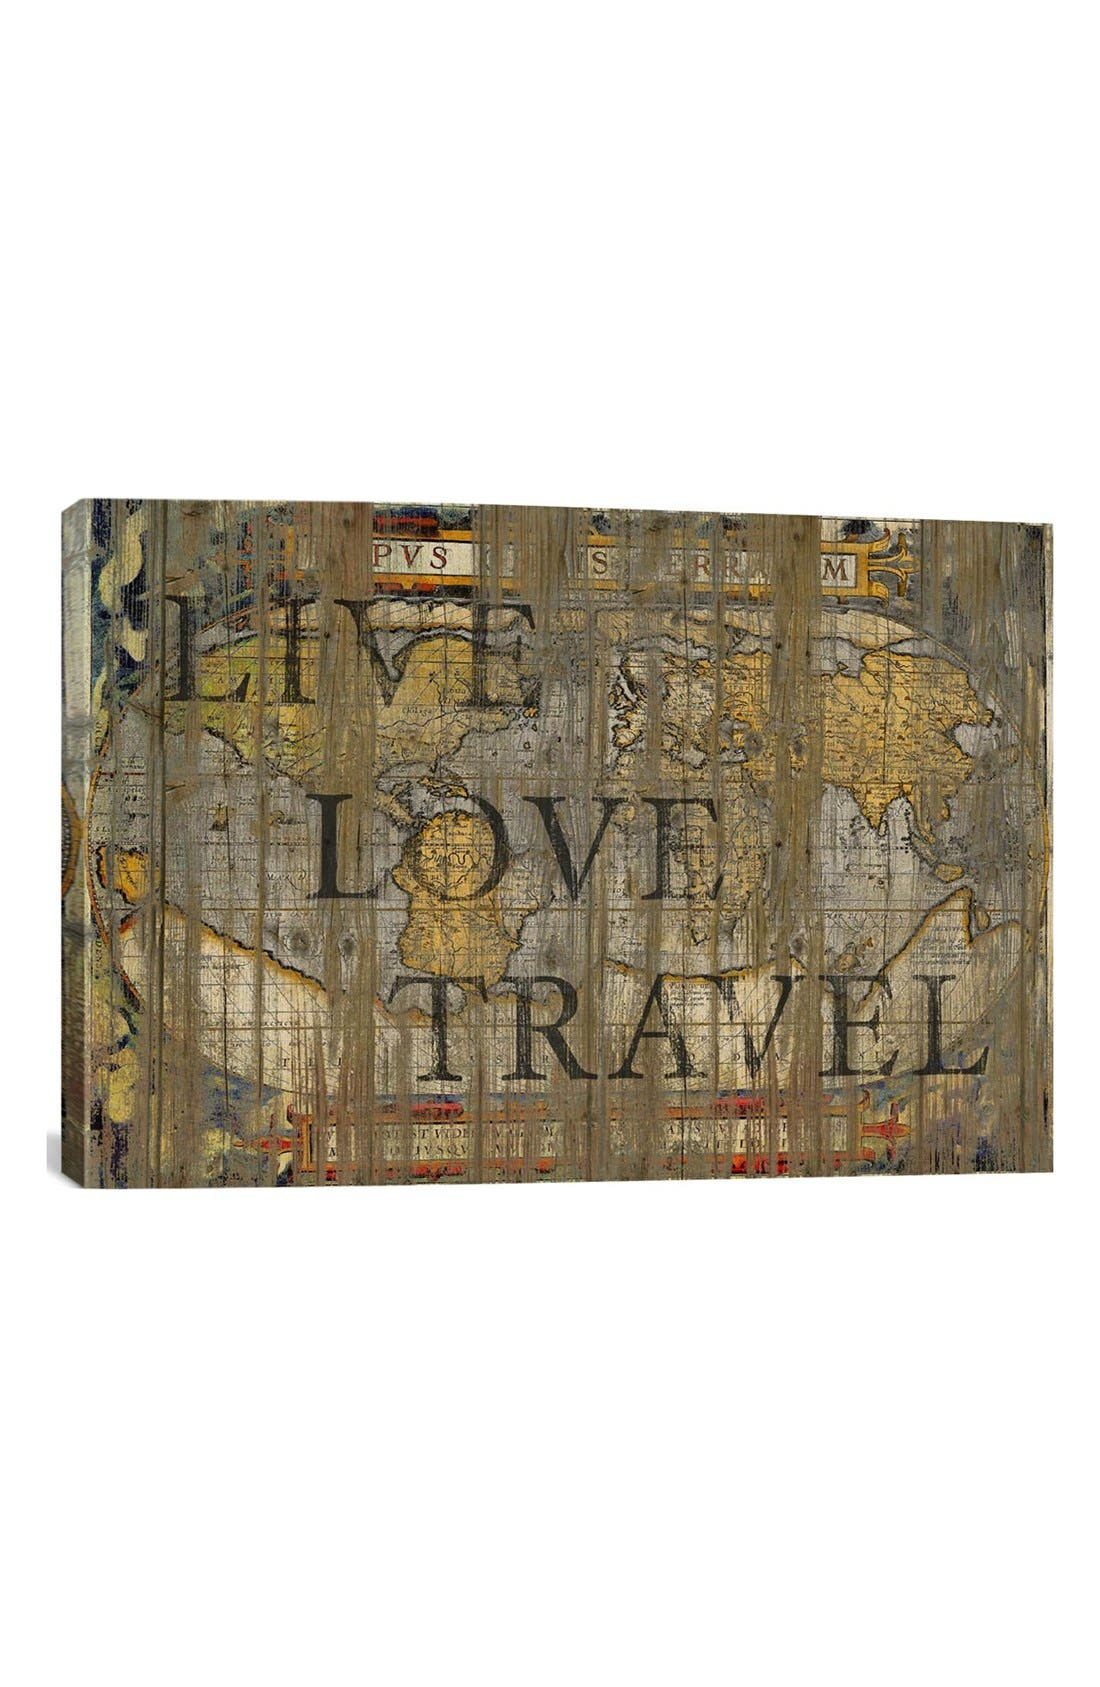 'Live Love Travel - Diego Tirigall' Giclée Print Canvas Art,                             Main thumbnail 1, color,                             200